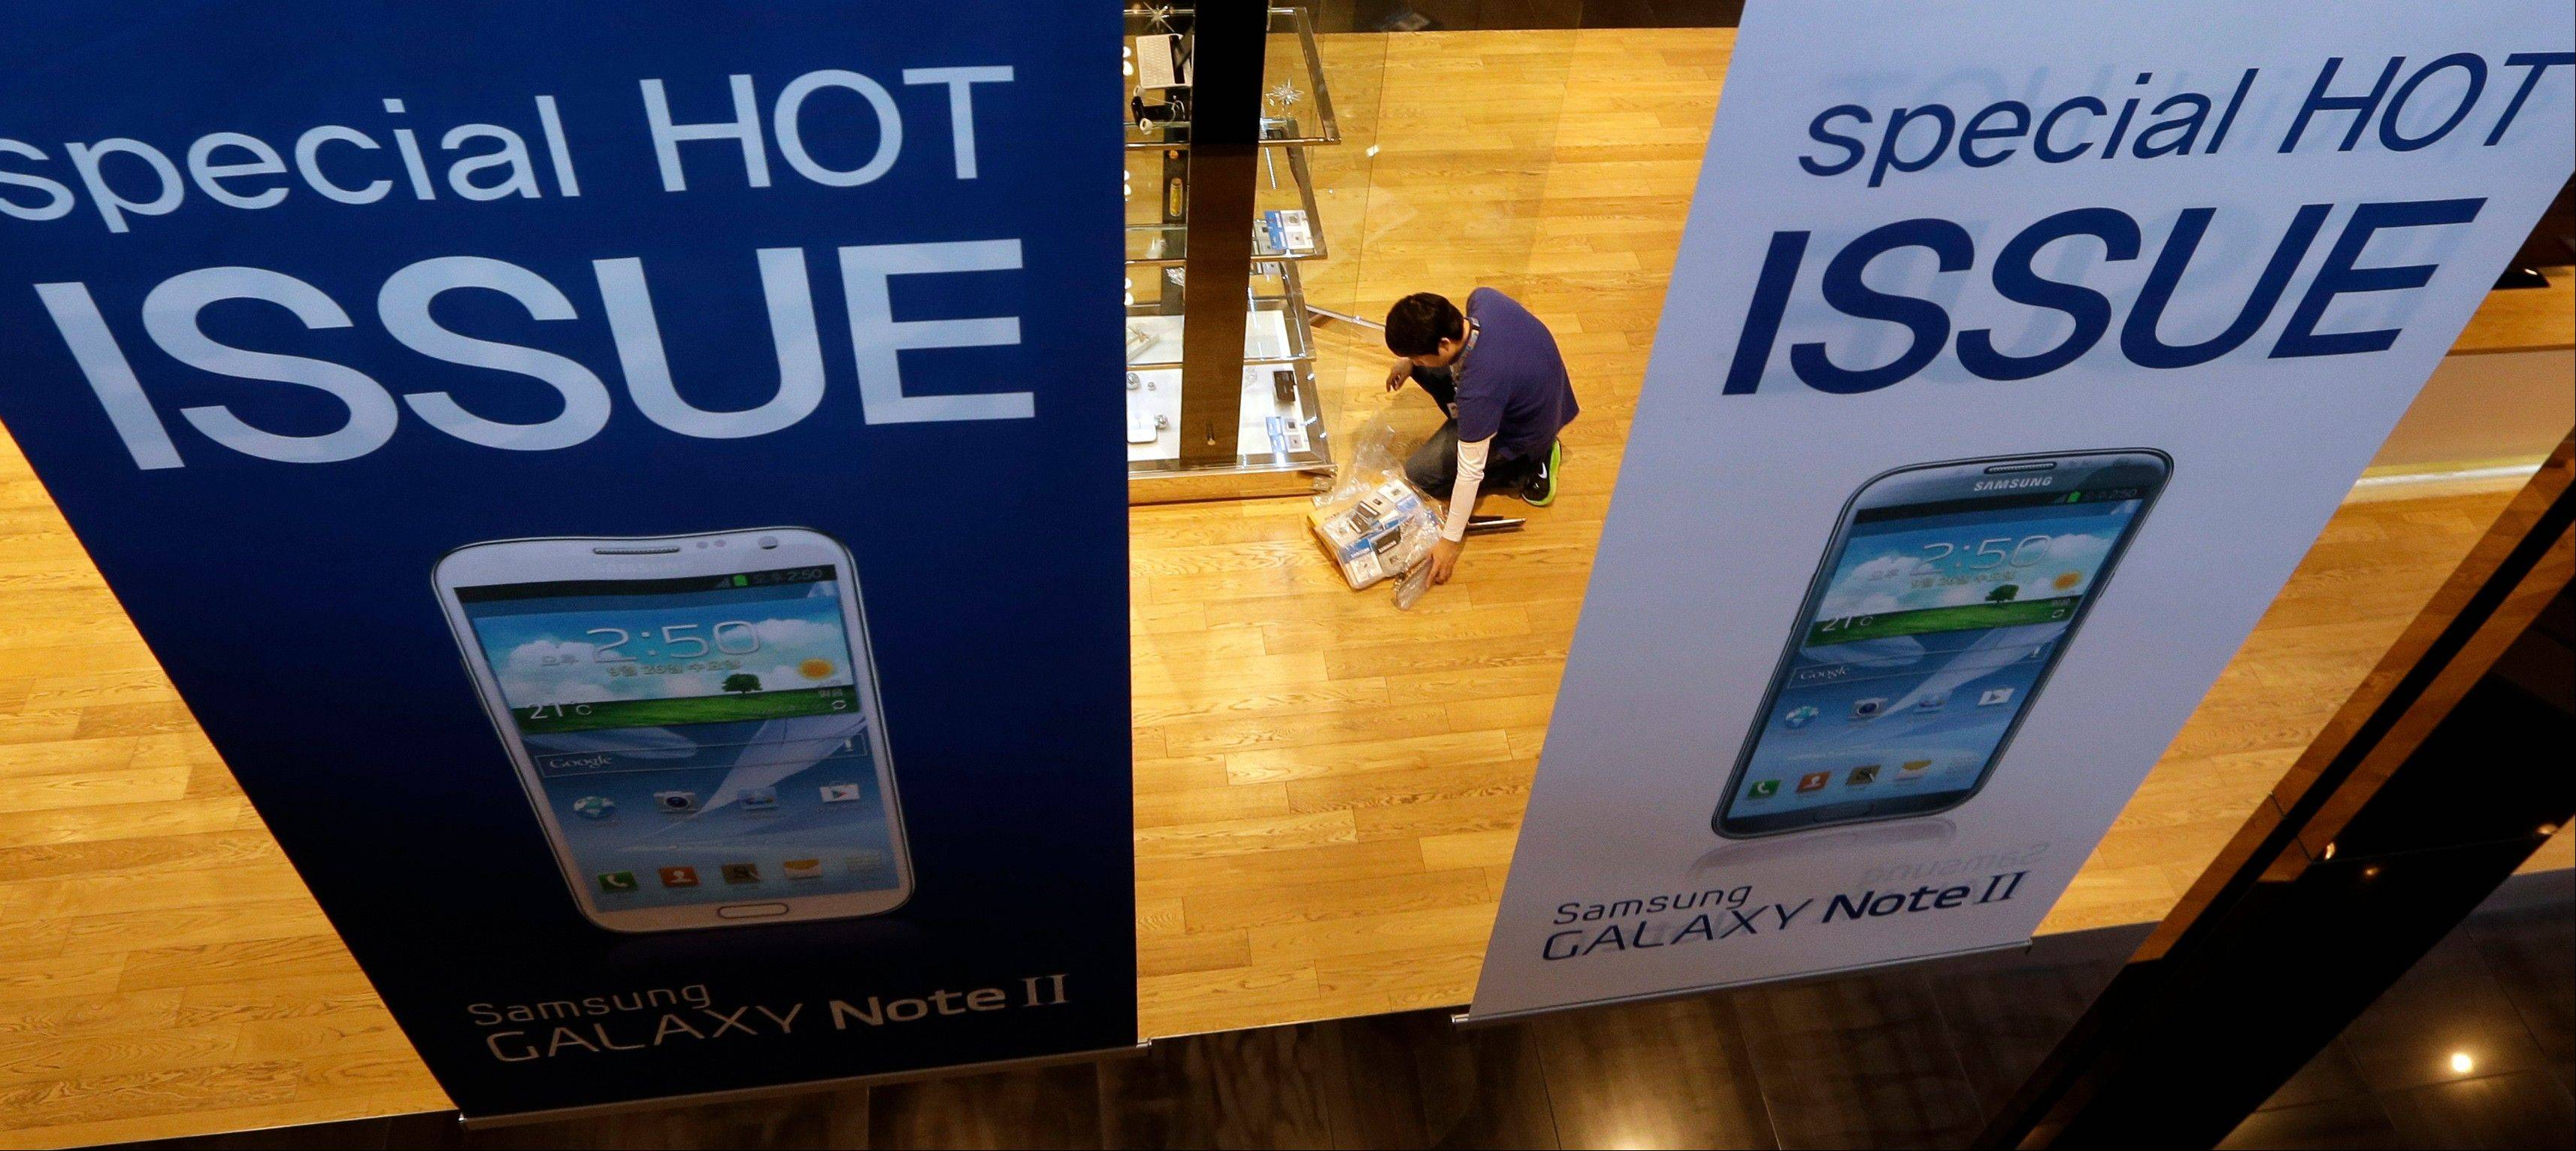 Samsung�s third-quarter net profit nearly doubled over a year earlier to a record high propelled by strong sales of Galaxy phones that helped widen its lead over rivals.